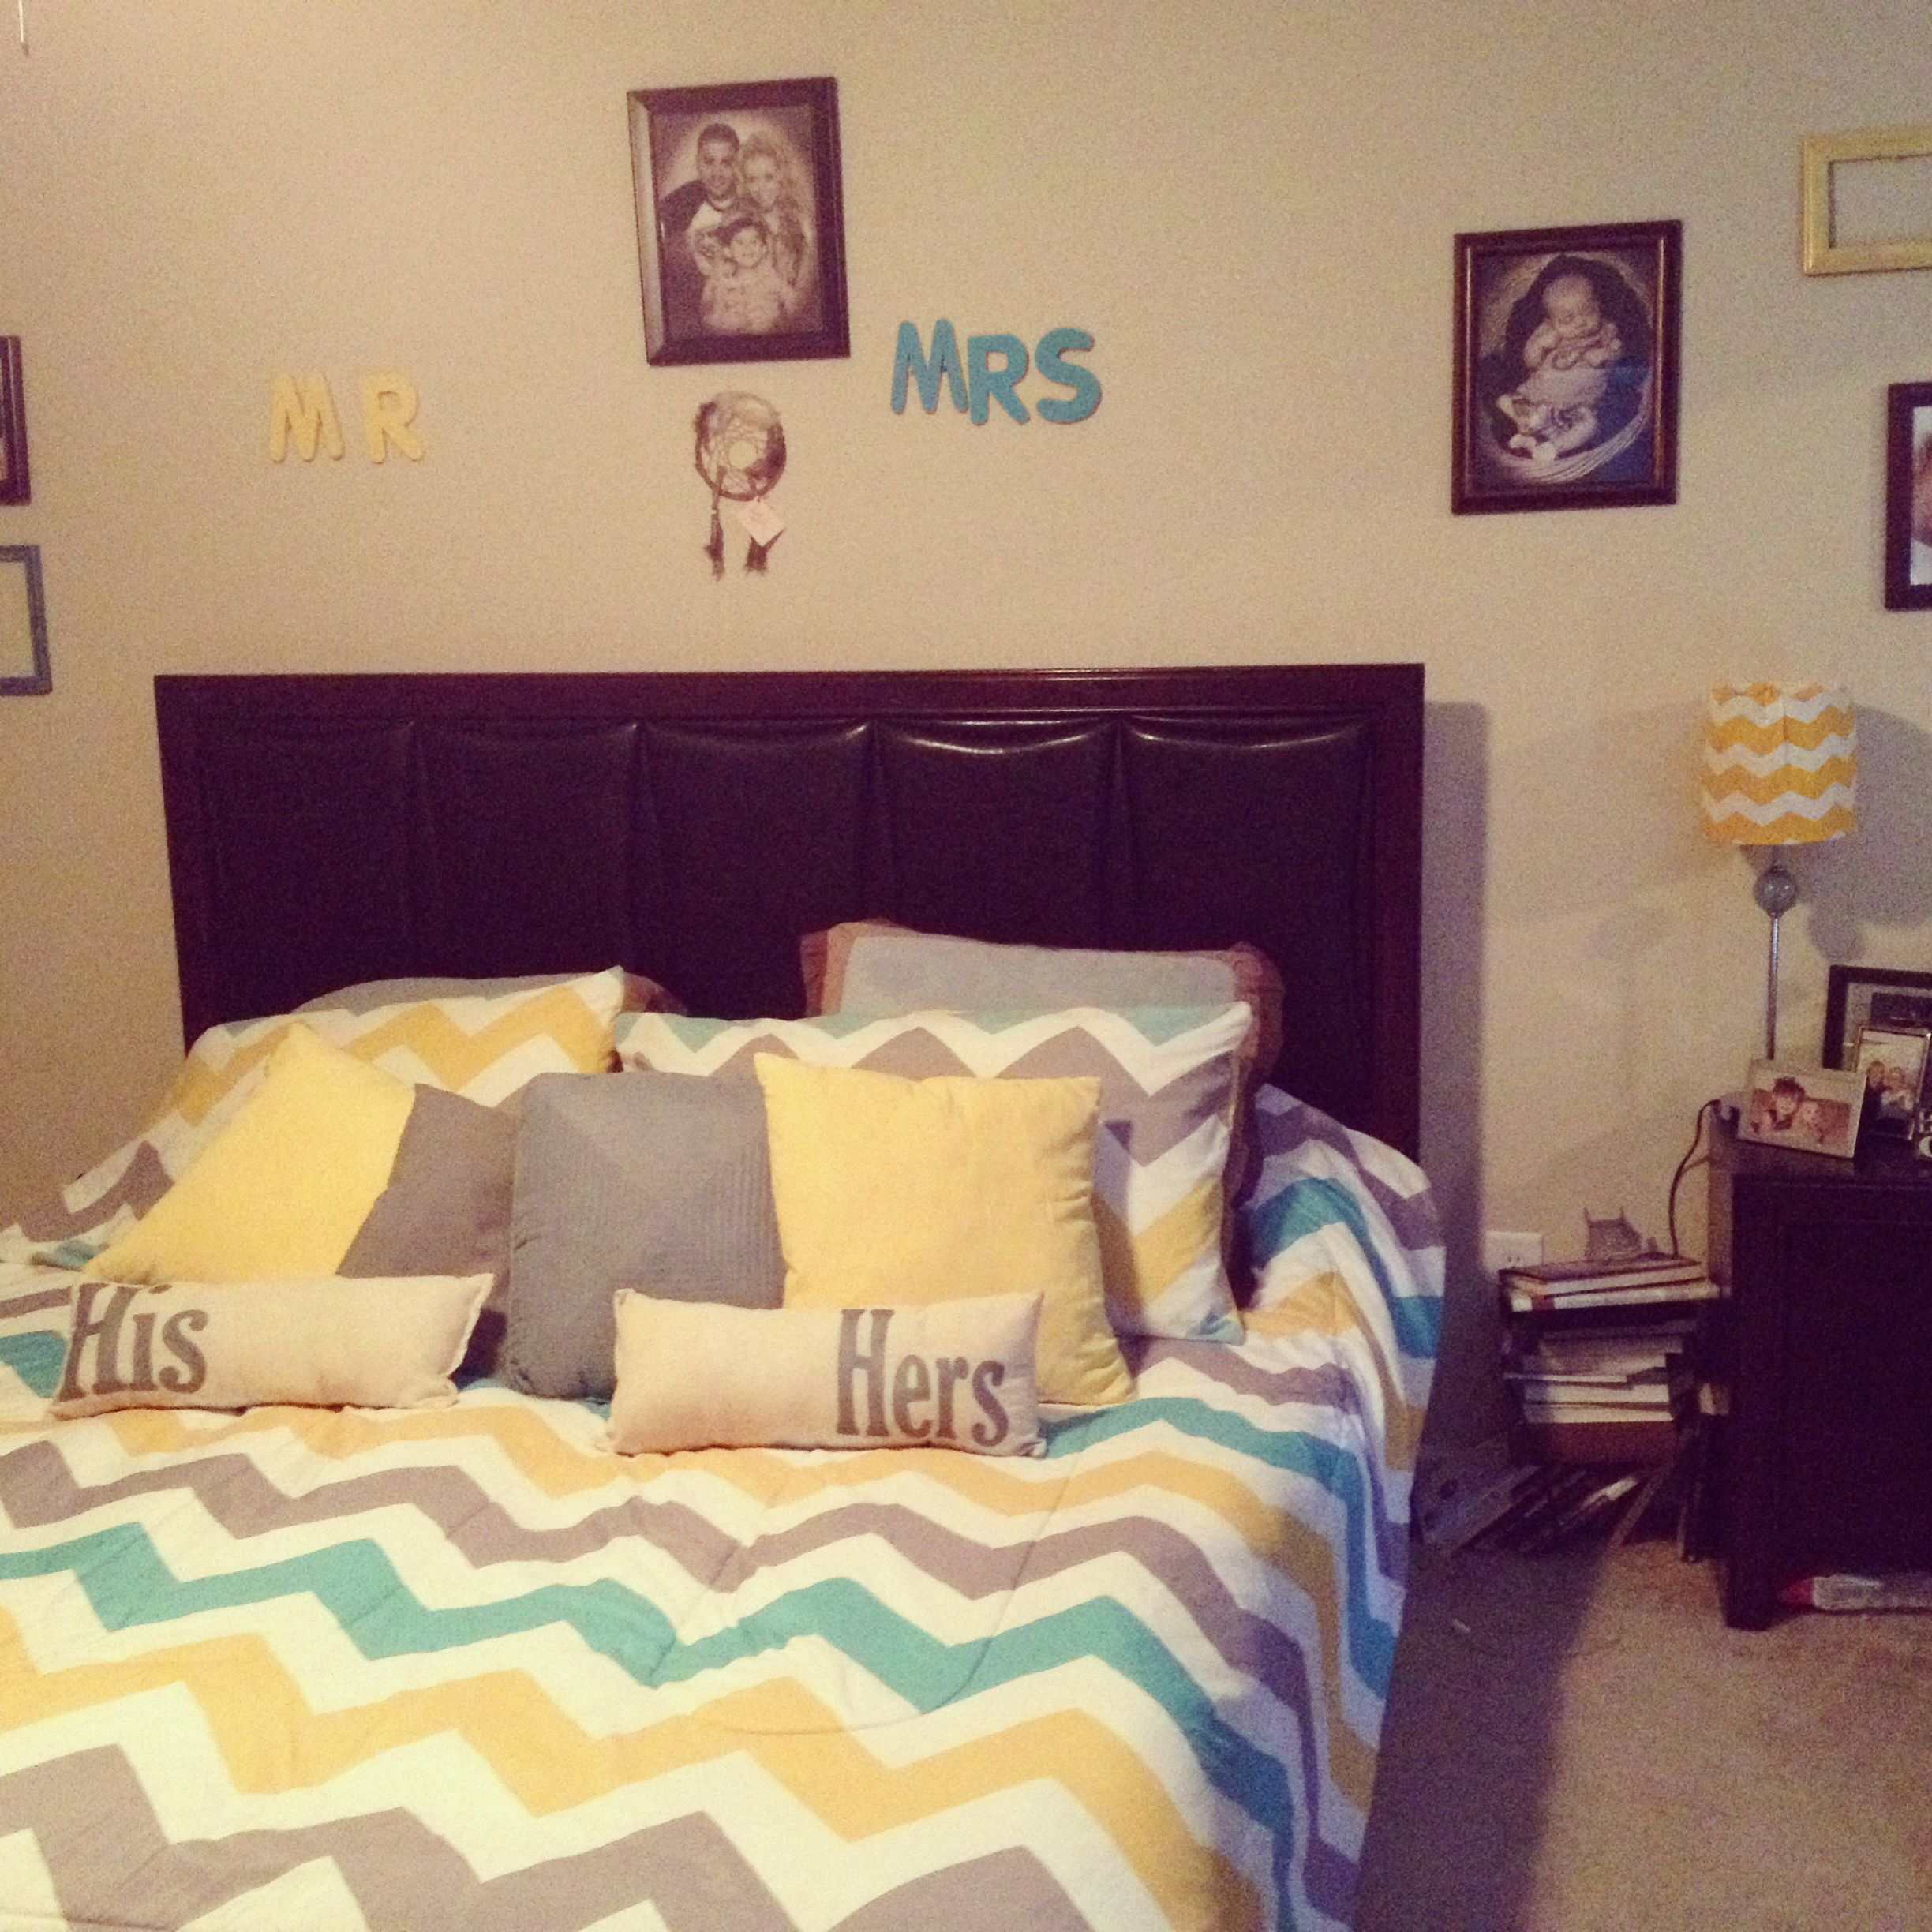 Yellow And Grey Bedroom Themes: Yellow, Gray, Teal Chevron Bedroom. Flores House.